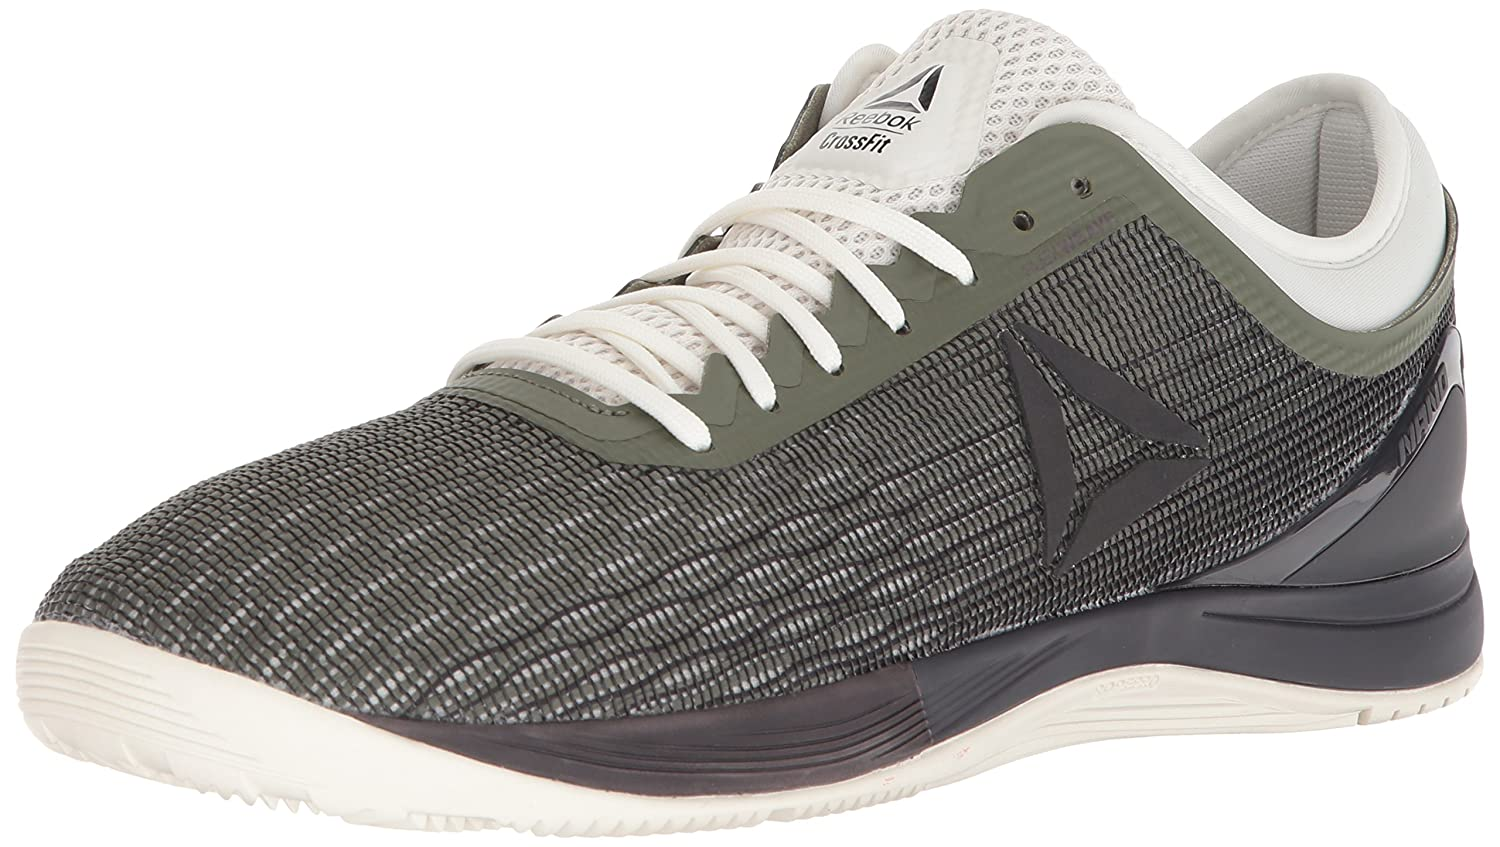 Reebok Men's Crossfit Nano 8.0 Flexweave B076HSGKS4 7 D(M) US|Hunter Green/Coal/Chalk